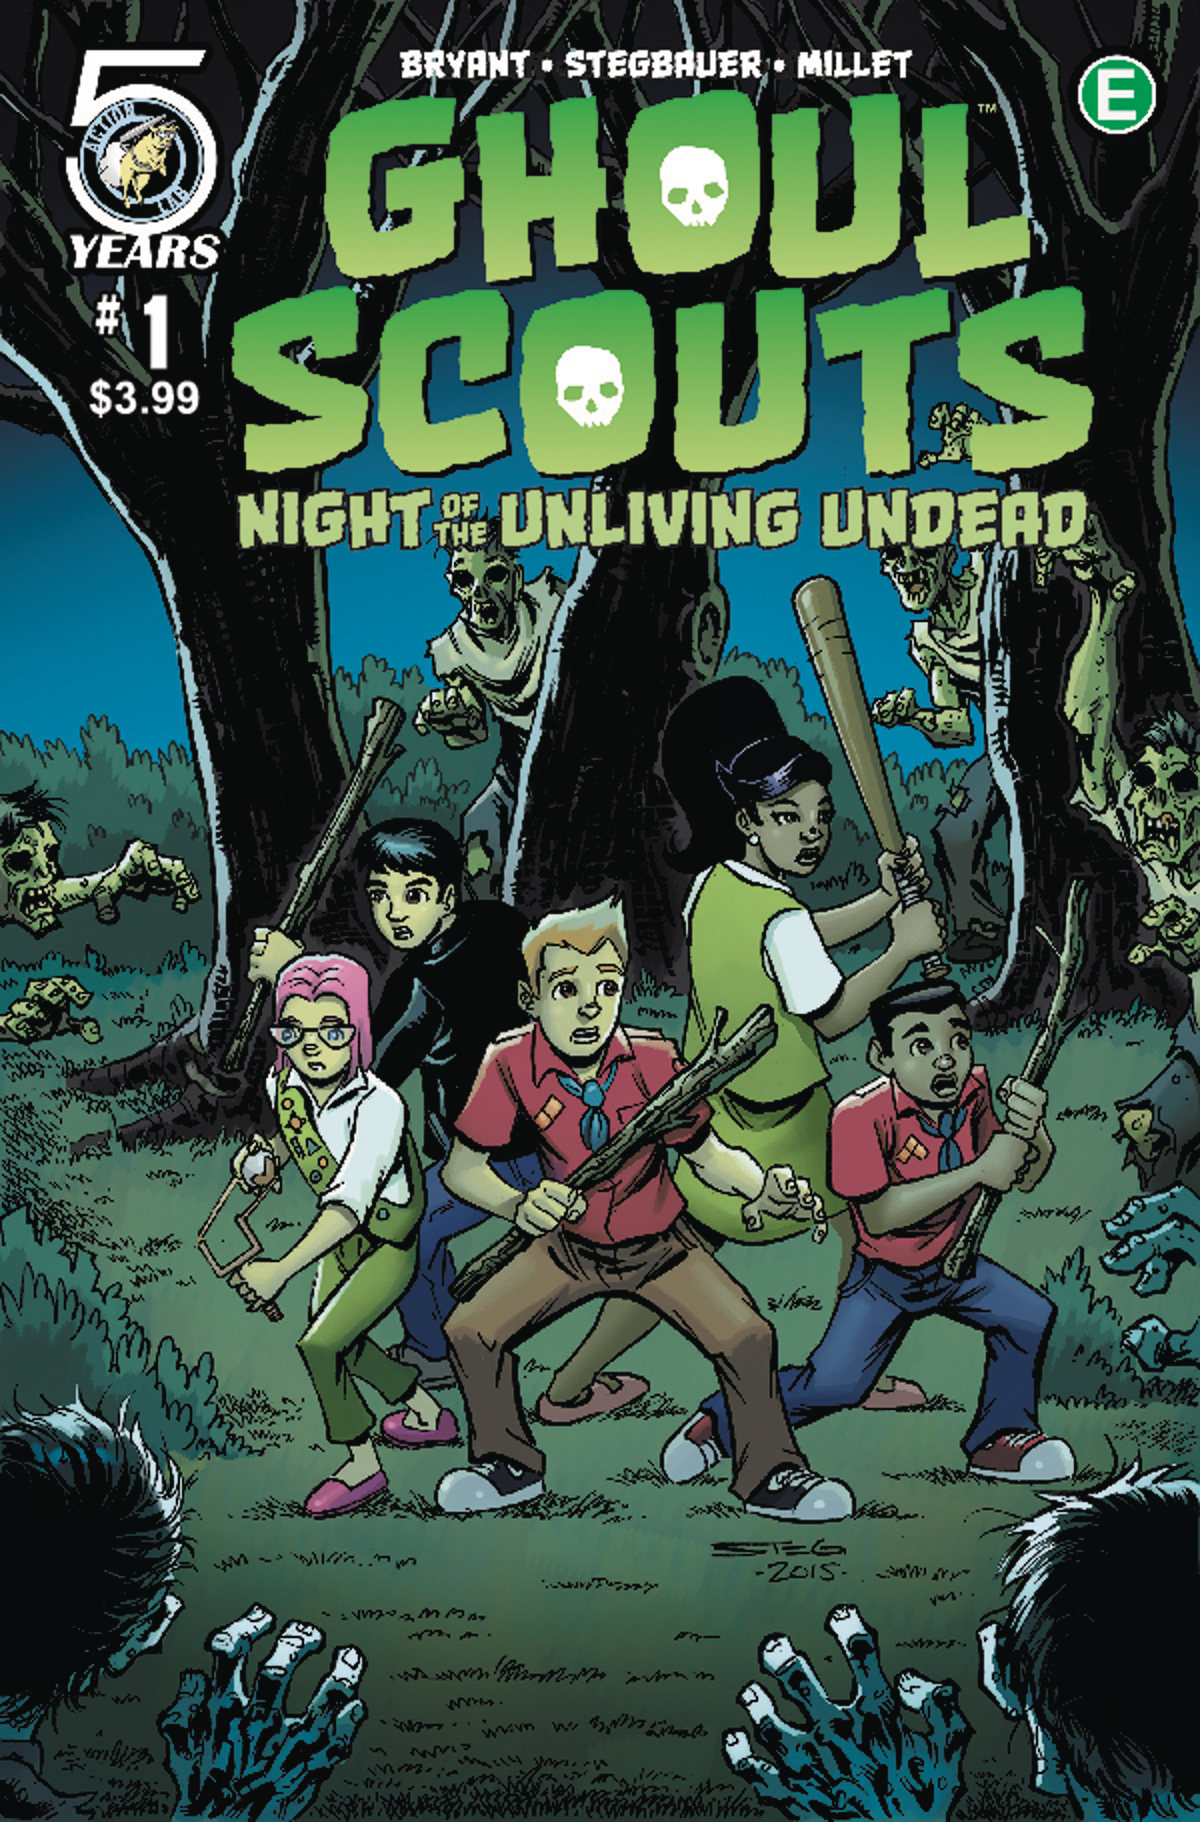 GHOUL SCOUTS NIGHT OF THE UNLIVING UNDEAD #1 CVR A STEGBAUER